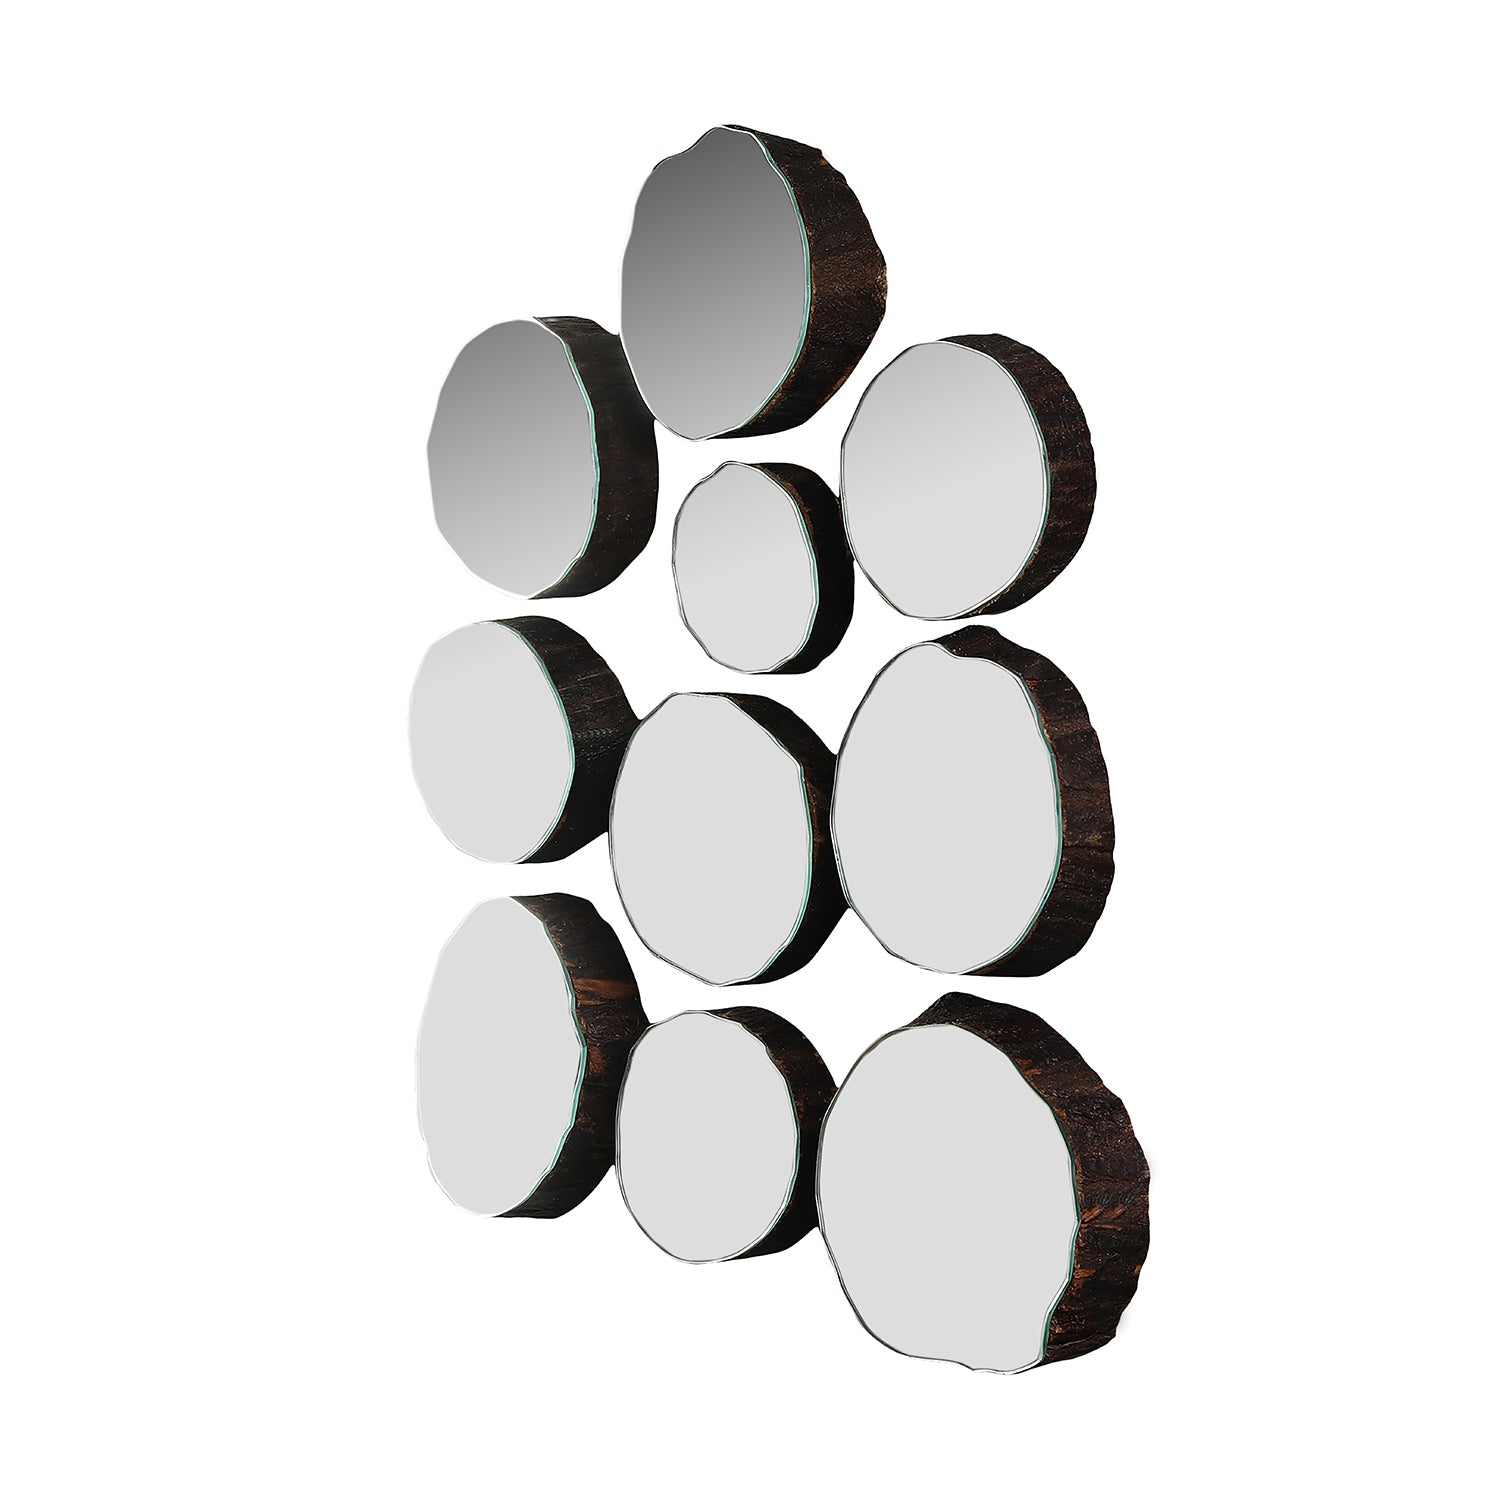 Blissful Elegance - Mirror Mounted Tree Logs (set of 10)